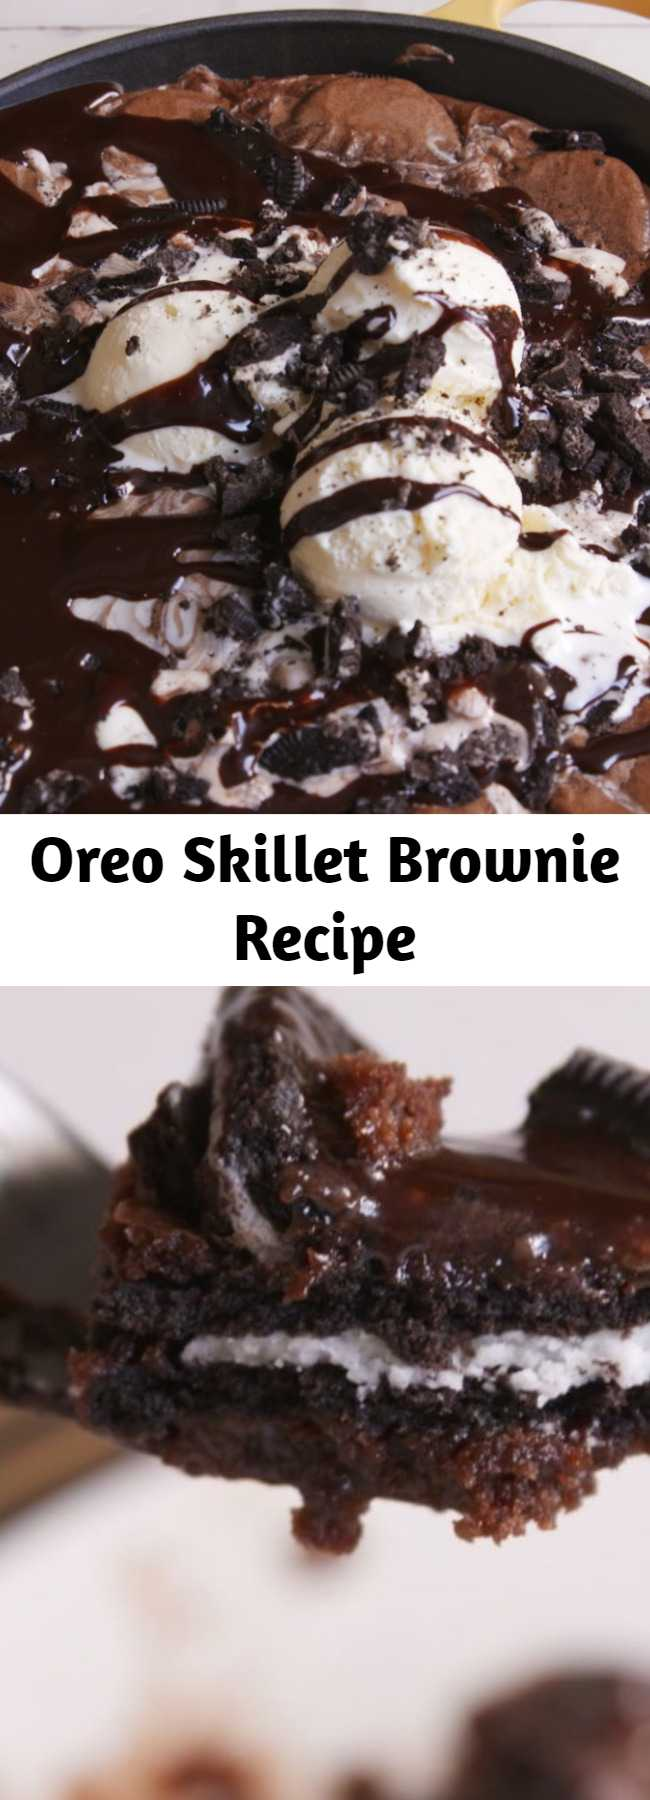 Oreo Skillet Brownie Recipe - Looking for an over-the-top Oreo brownie recipe? This Oreo Stuffed Skillet Brownie is the bomb. Only true Oreo lovers need apply.